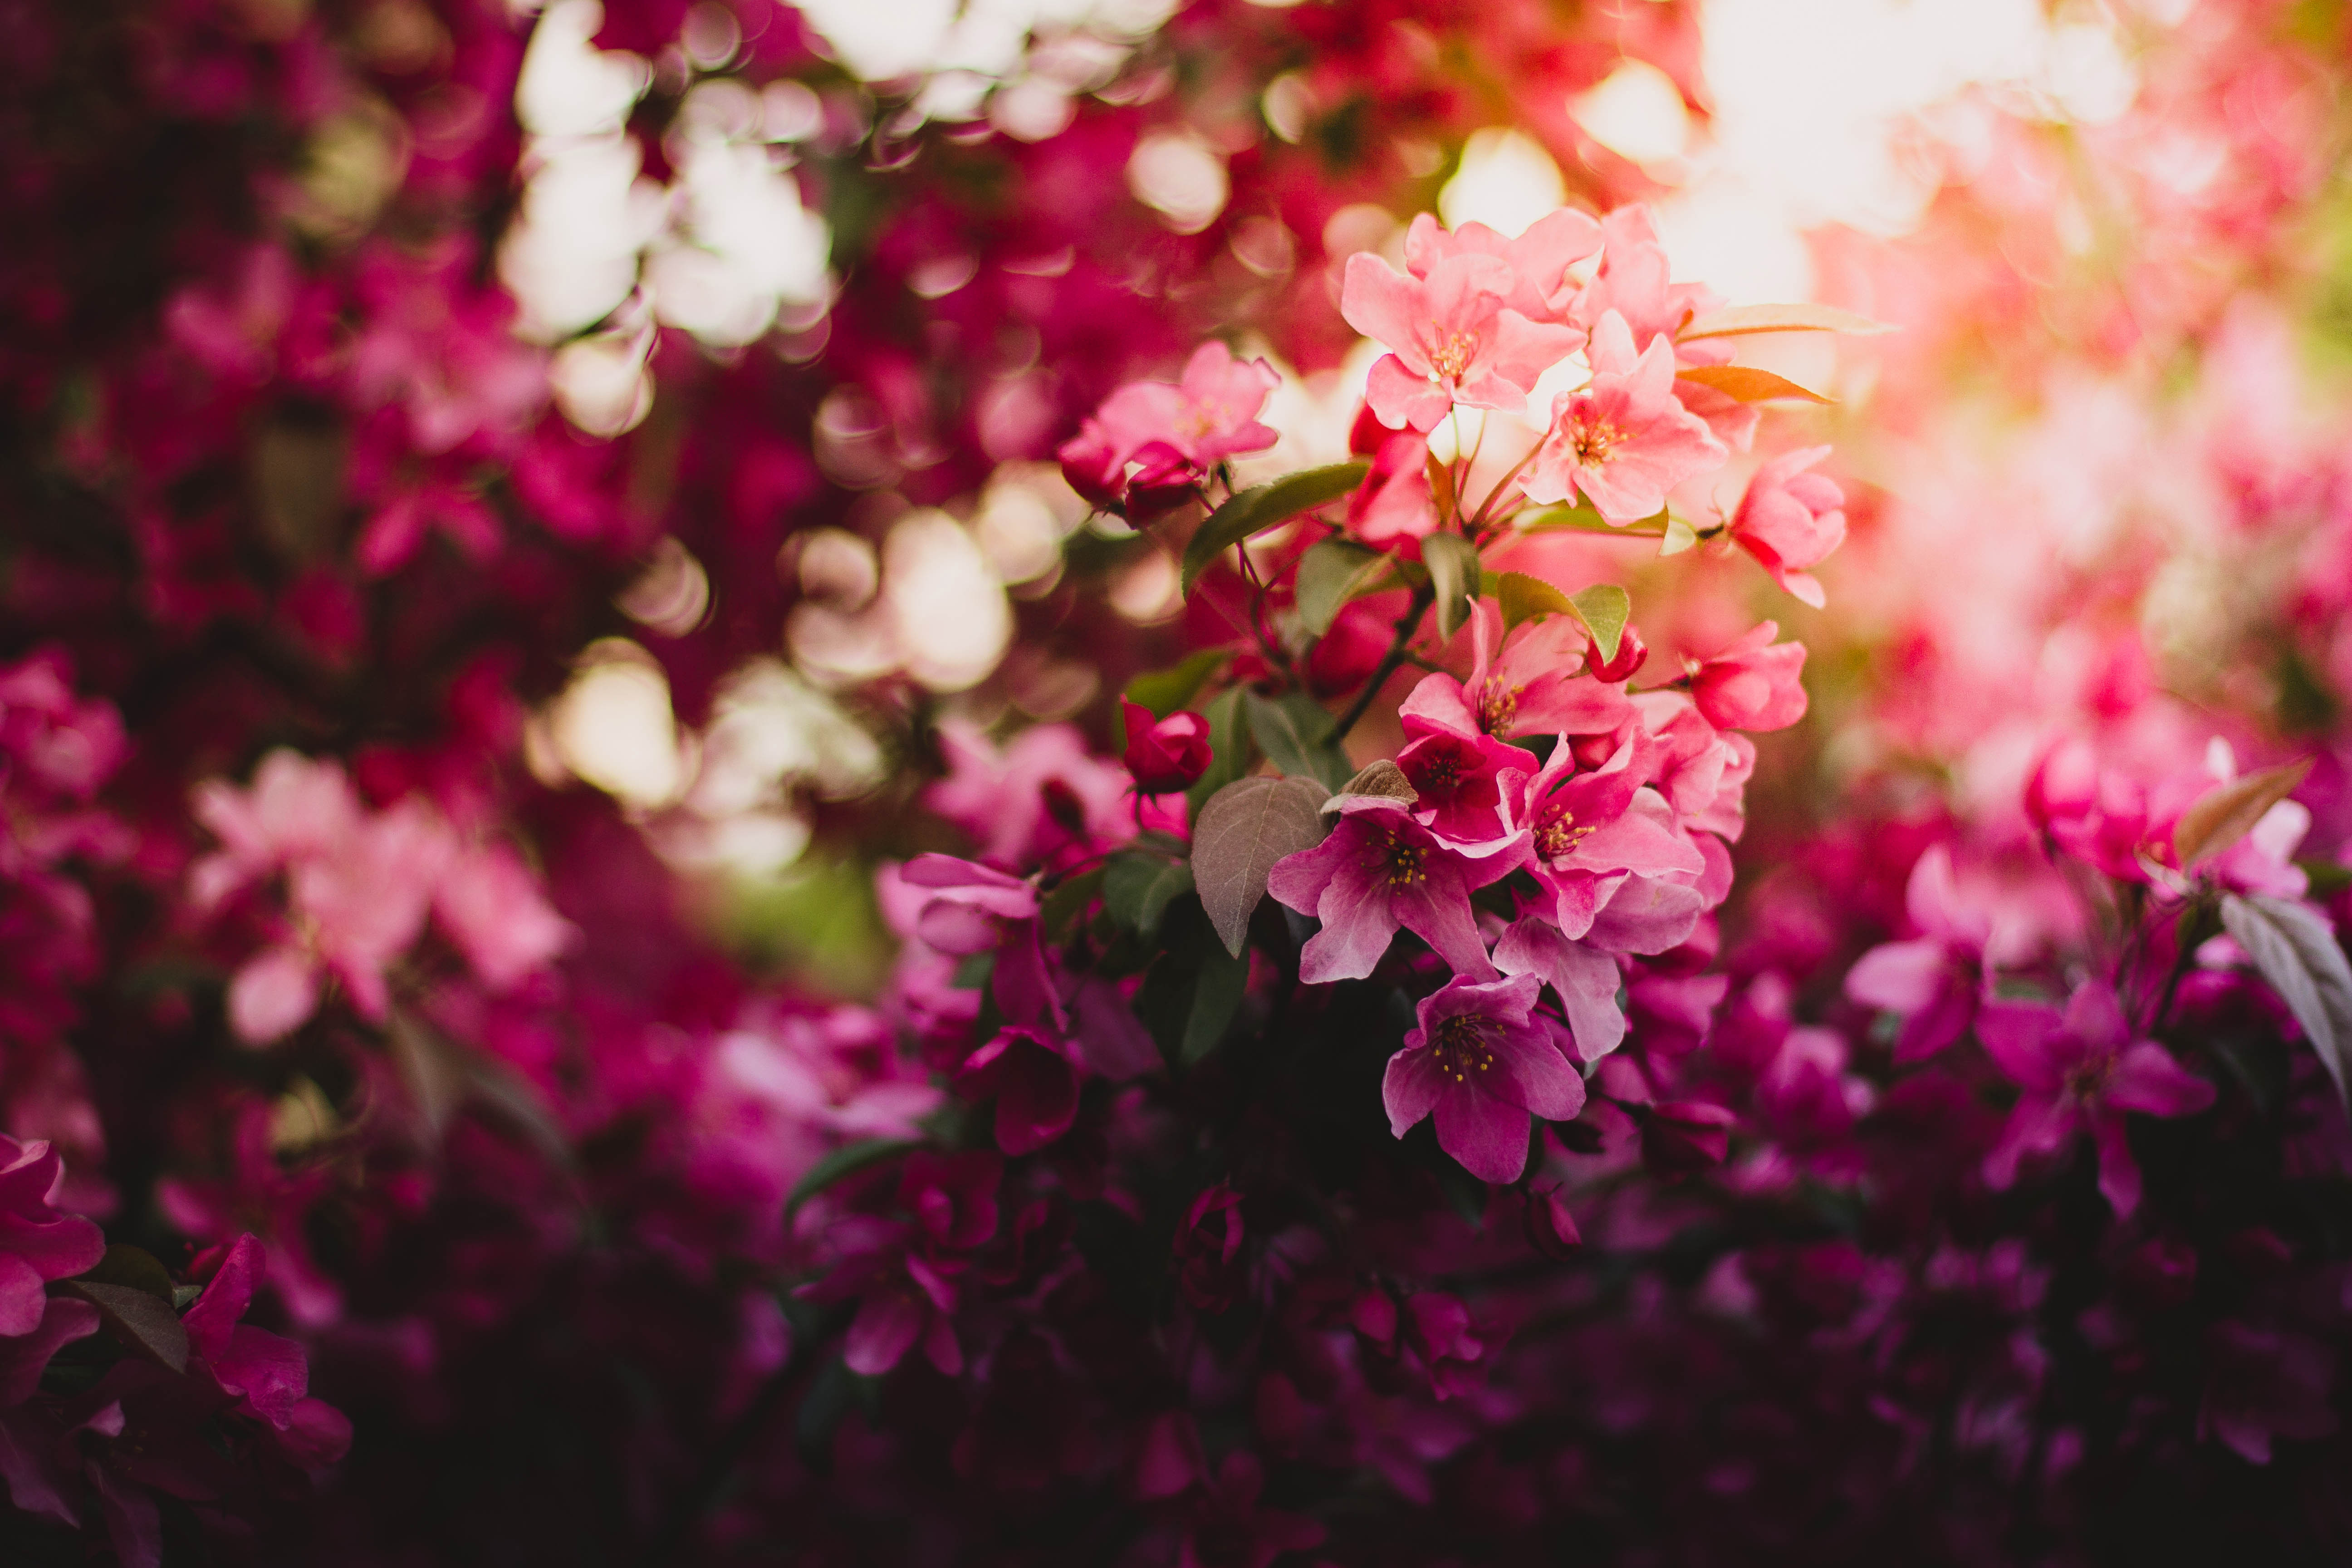 Pink Flowers On Tree 5k Hd Flowers 4k Wallpapers Images